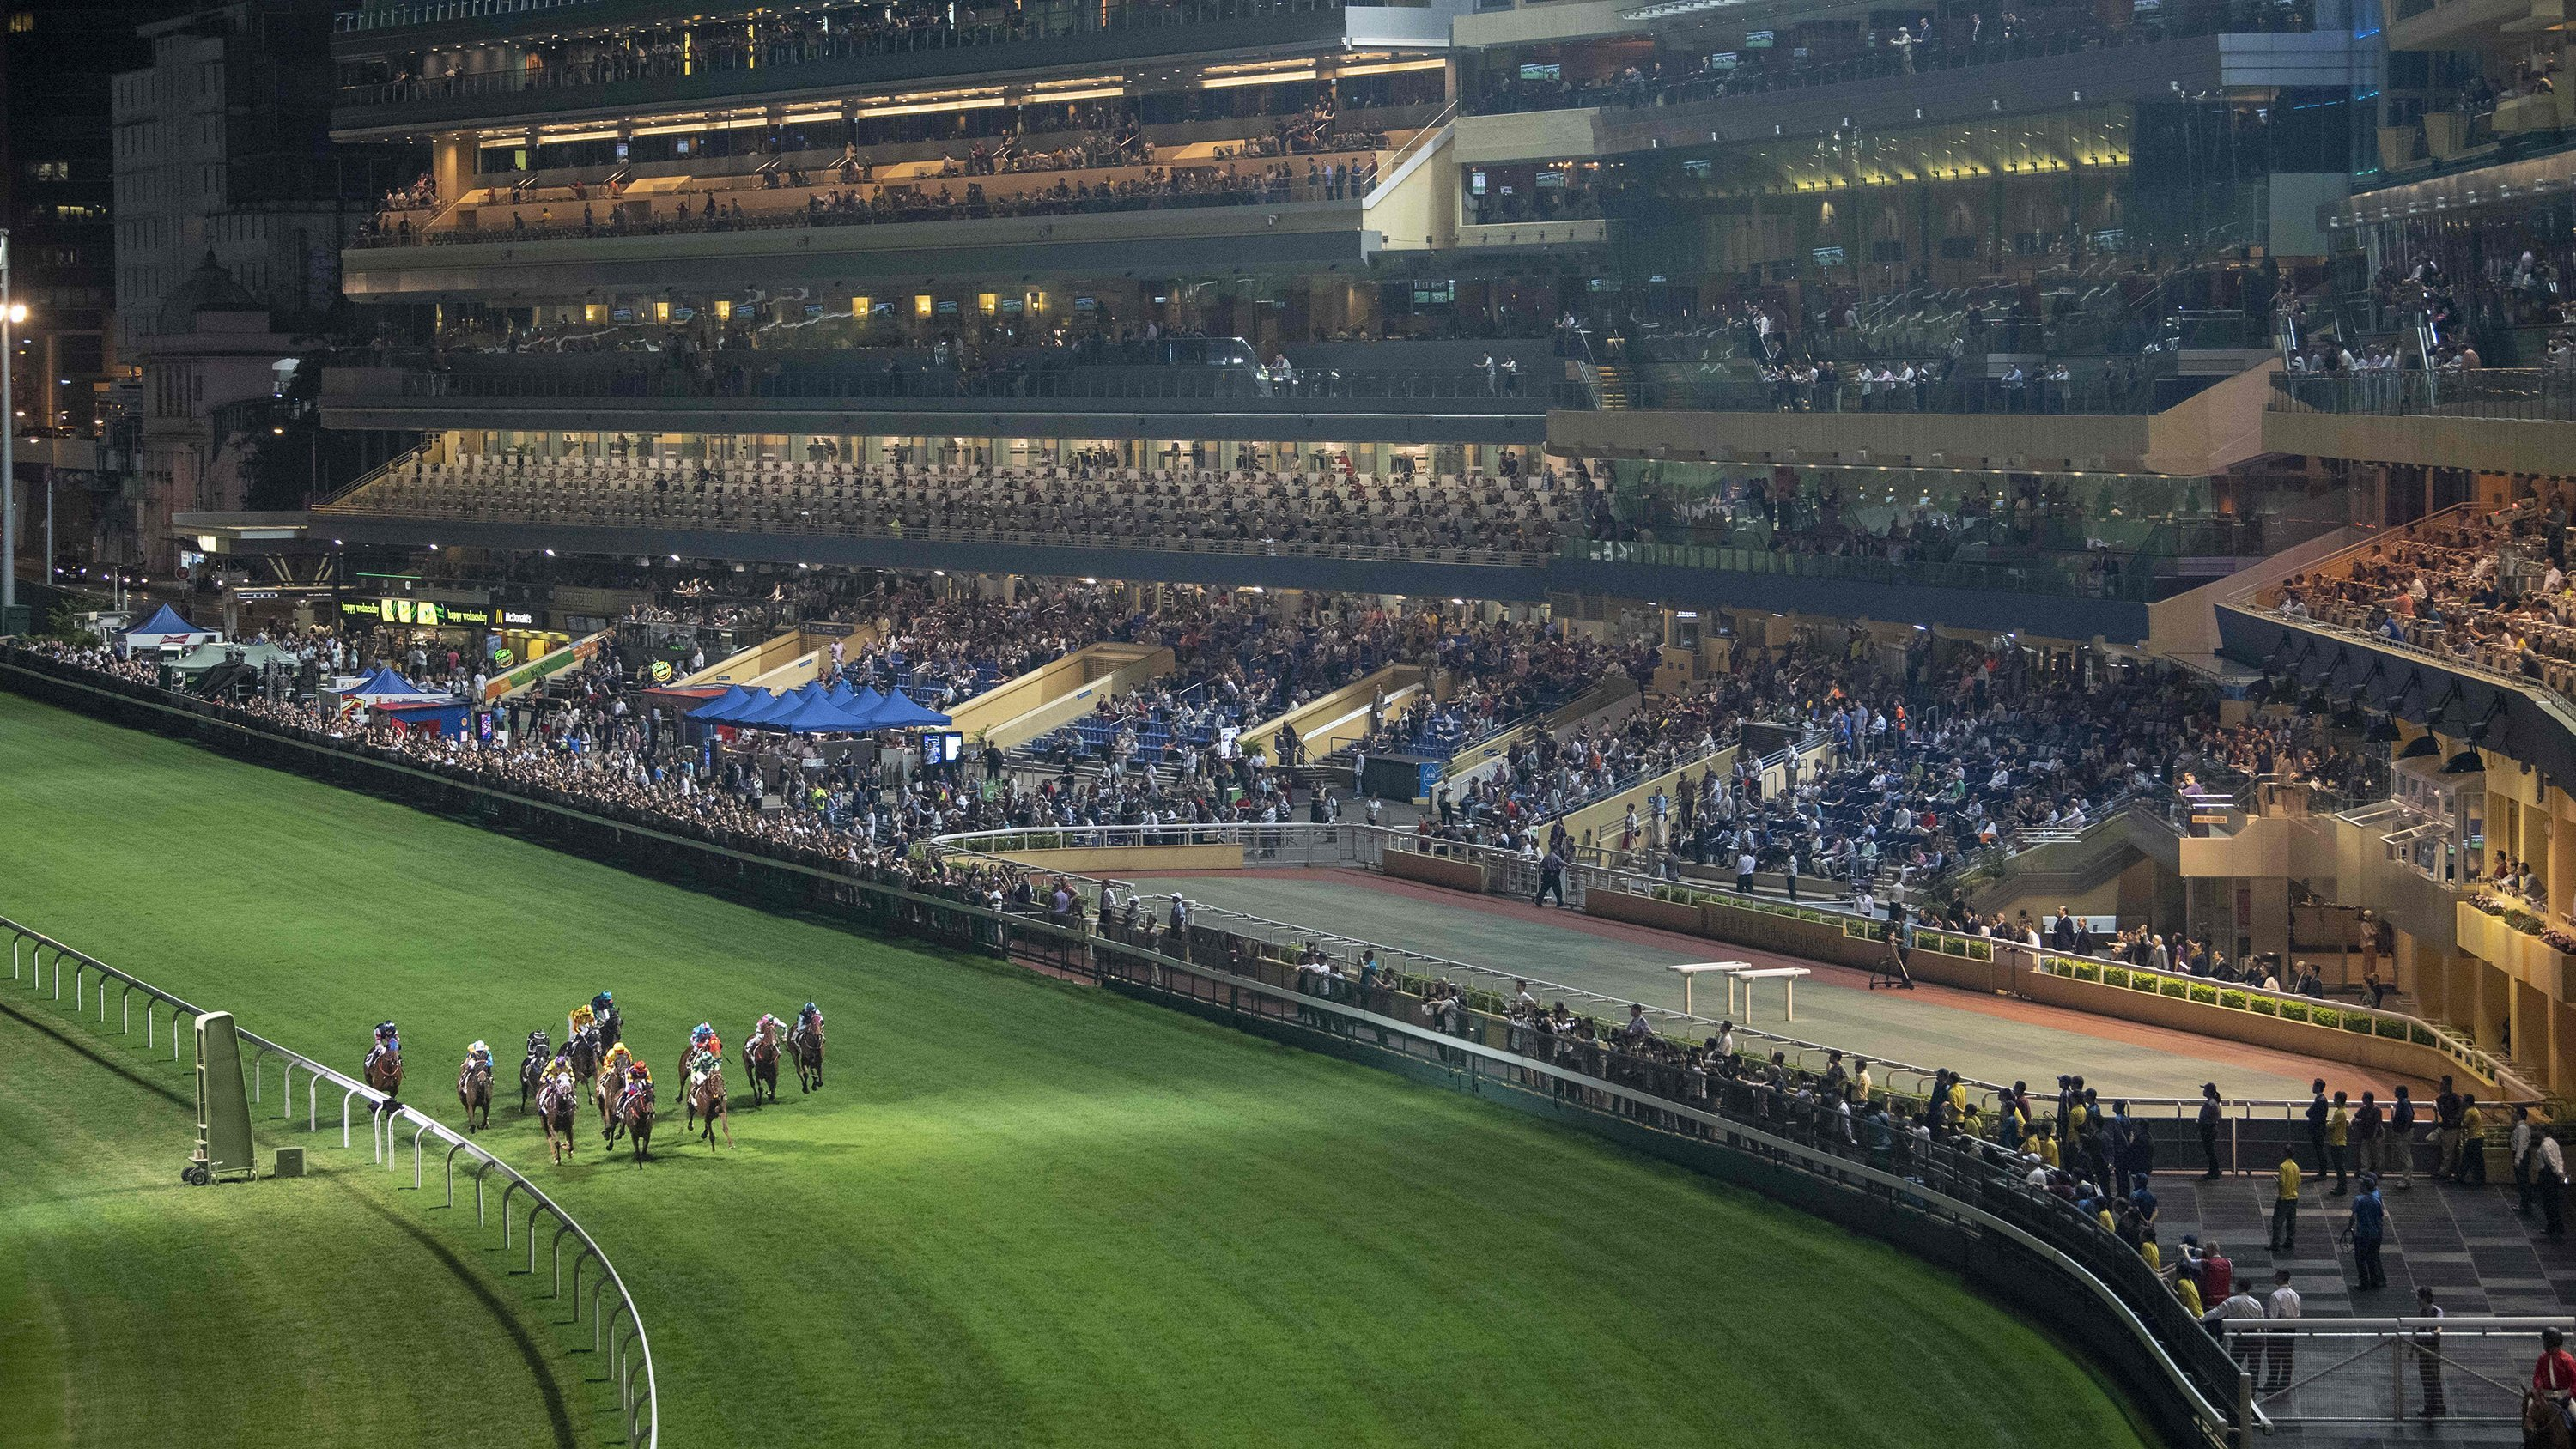 Hong Kong horse races canceled over fears of political unrest